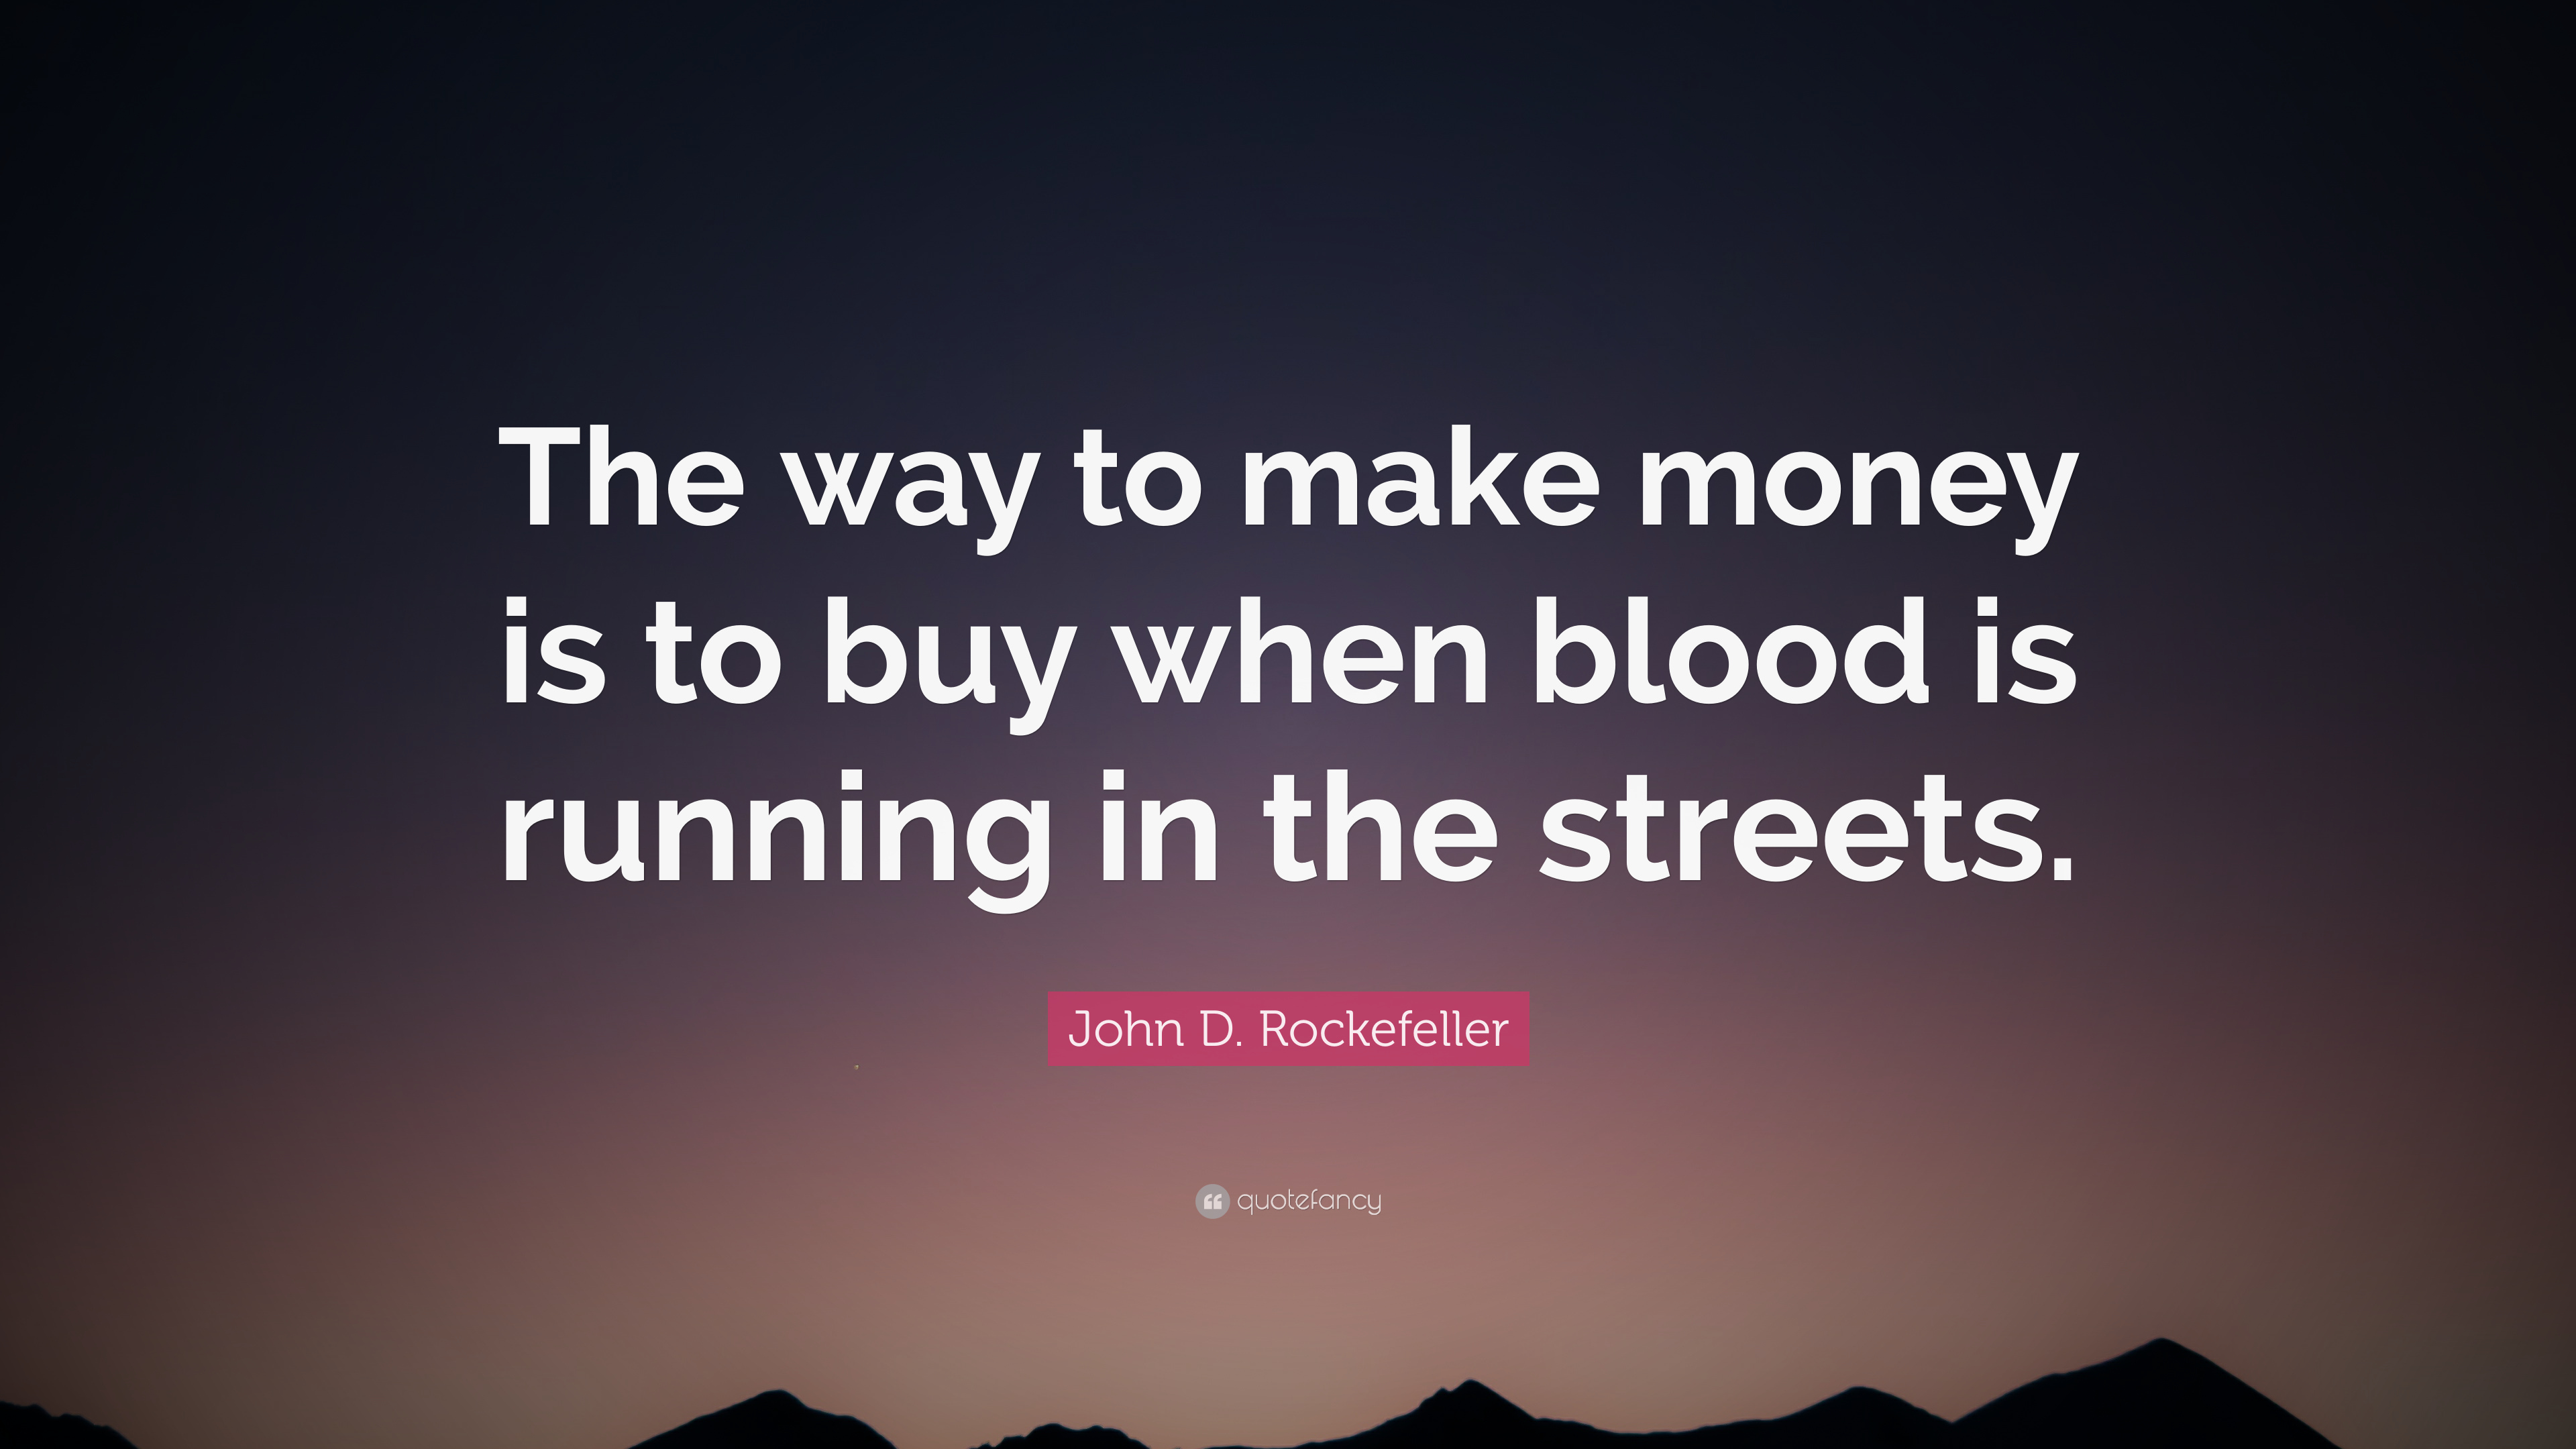 John D Rockefeller Quote The Way To Make Money Is To Buy When